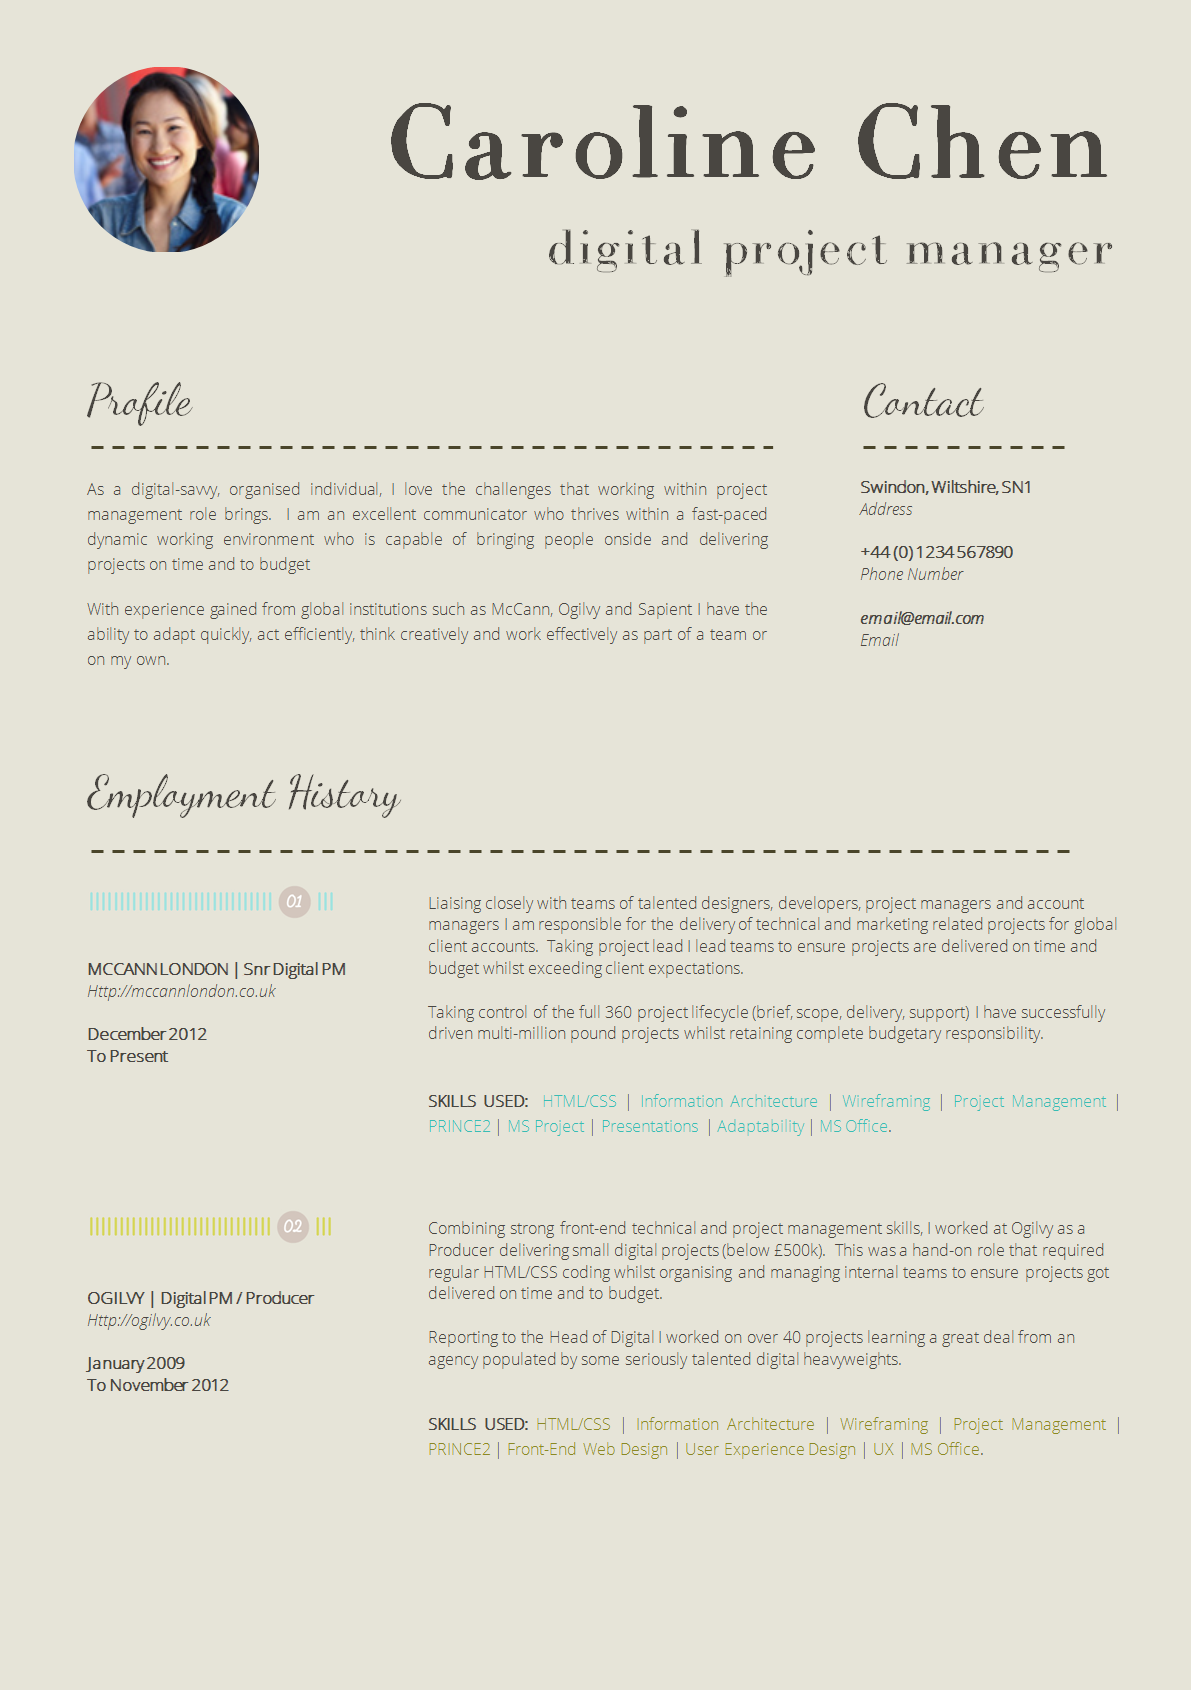 cv template - Download Professional Resume